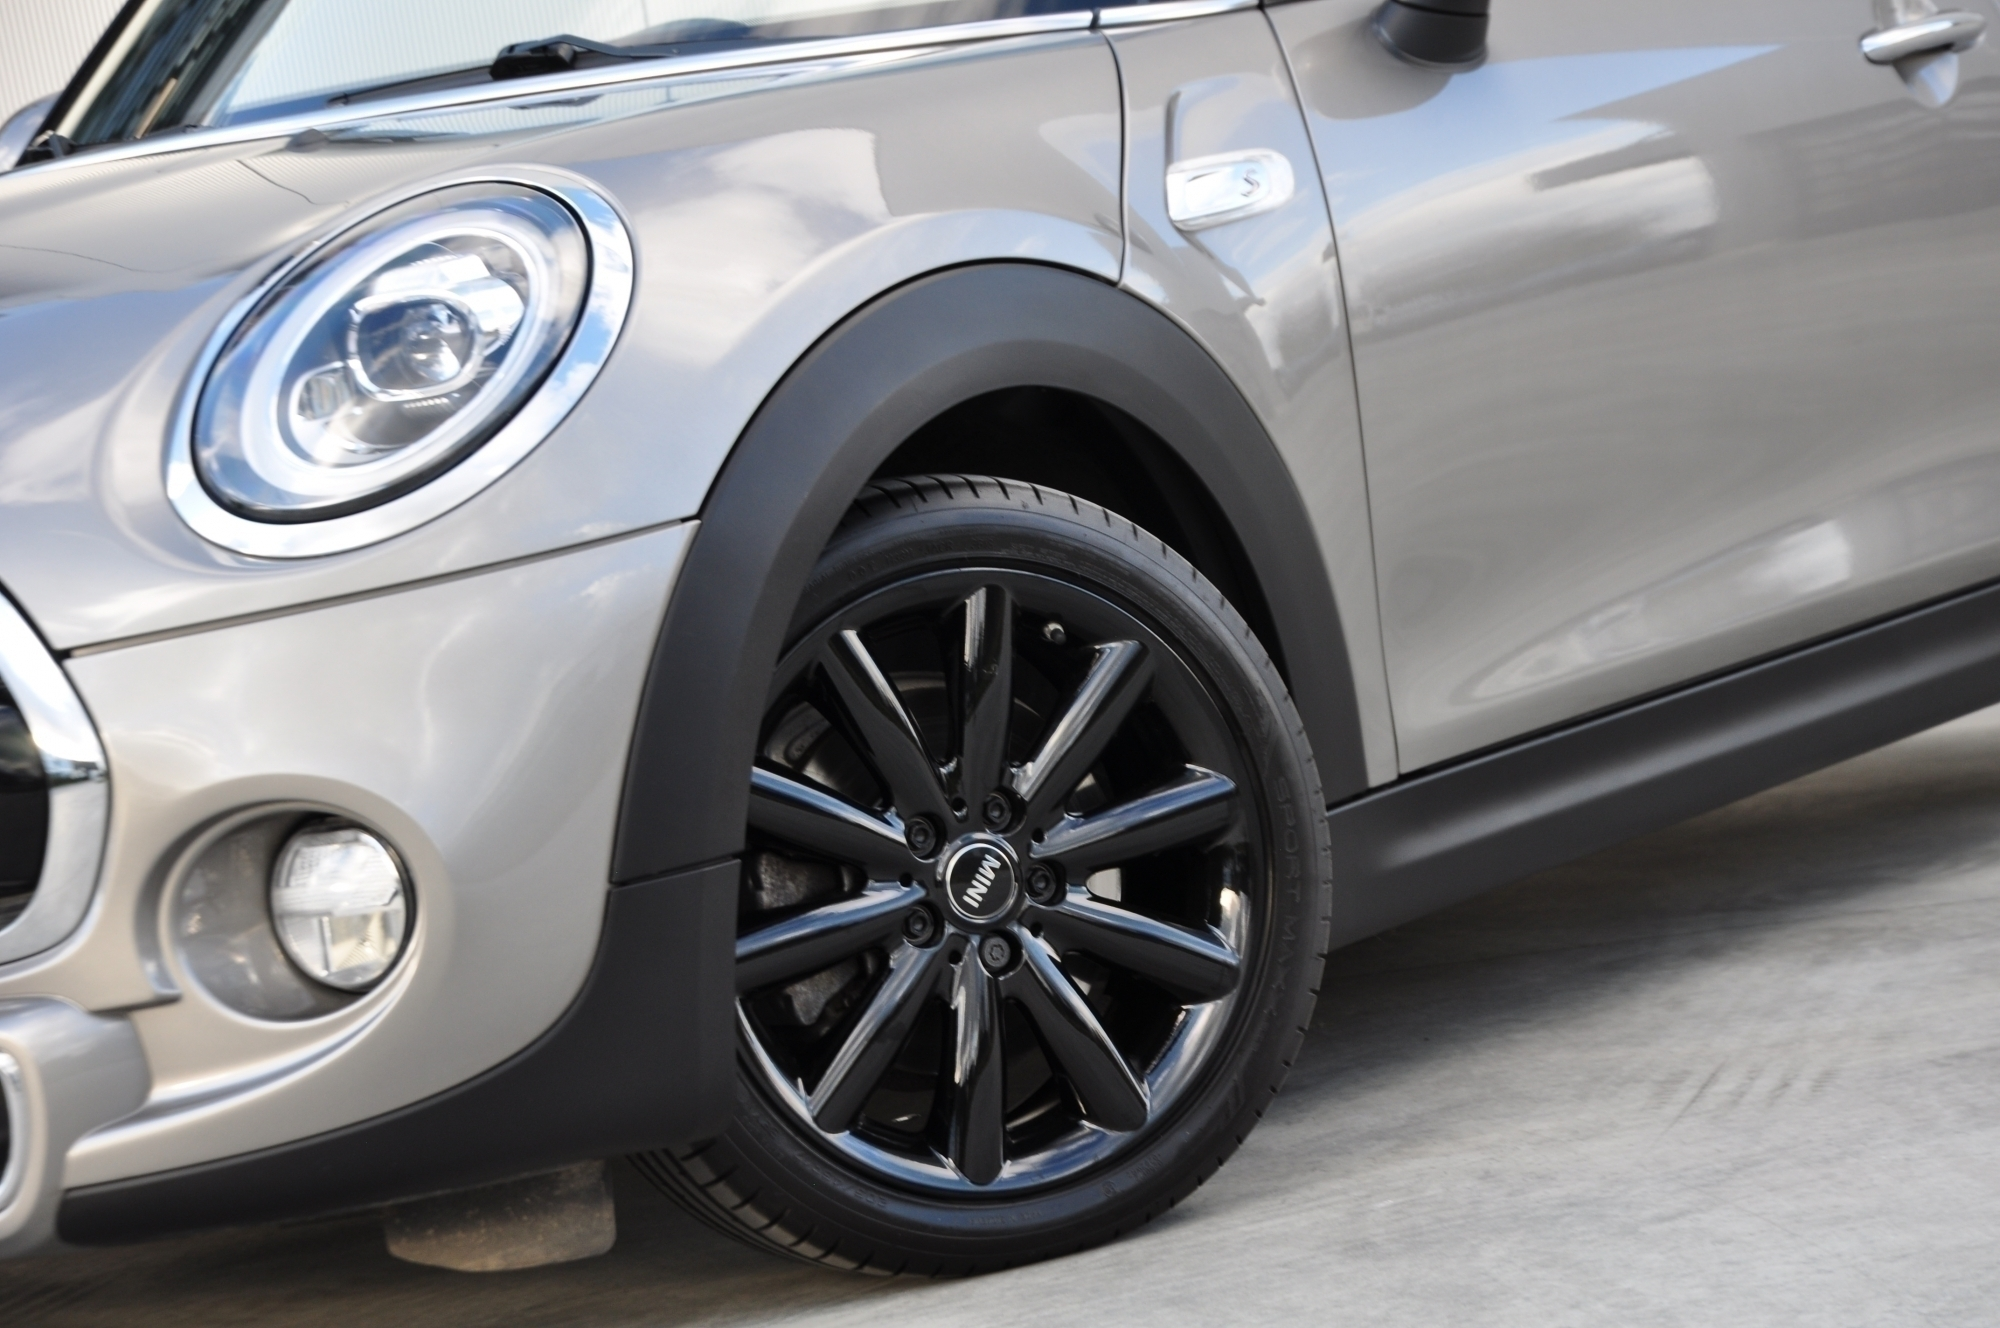 GDC Auto MINI Cooper S Cabrio 2.0AS